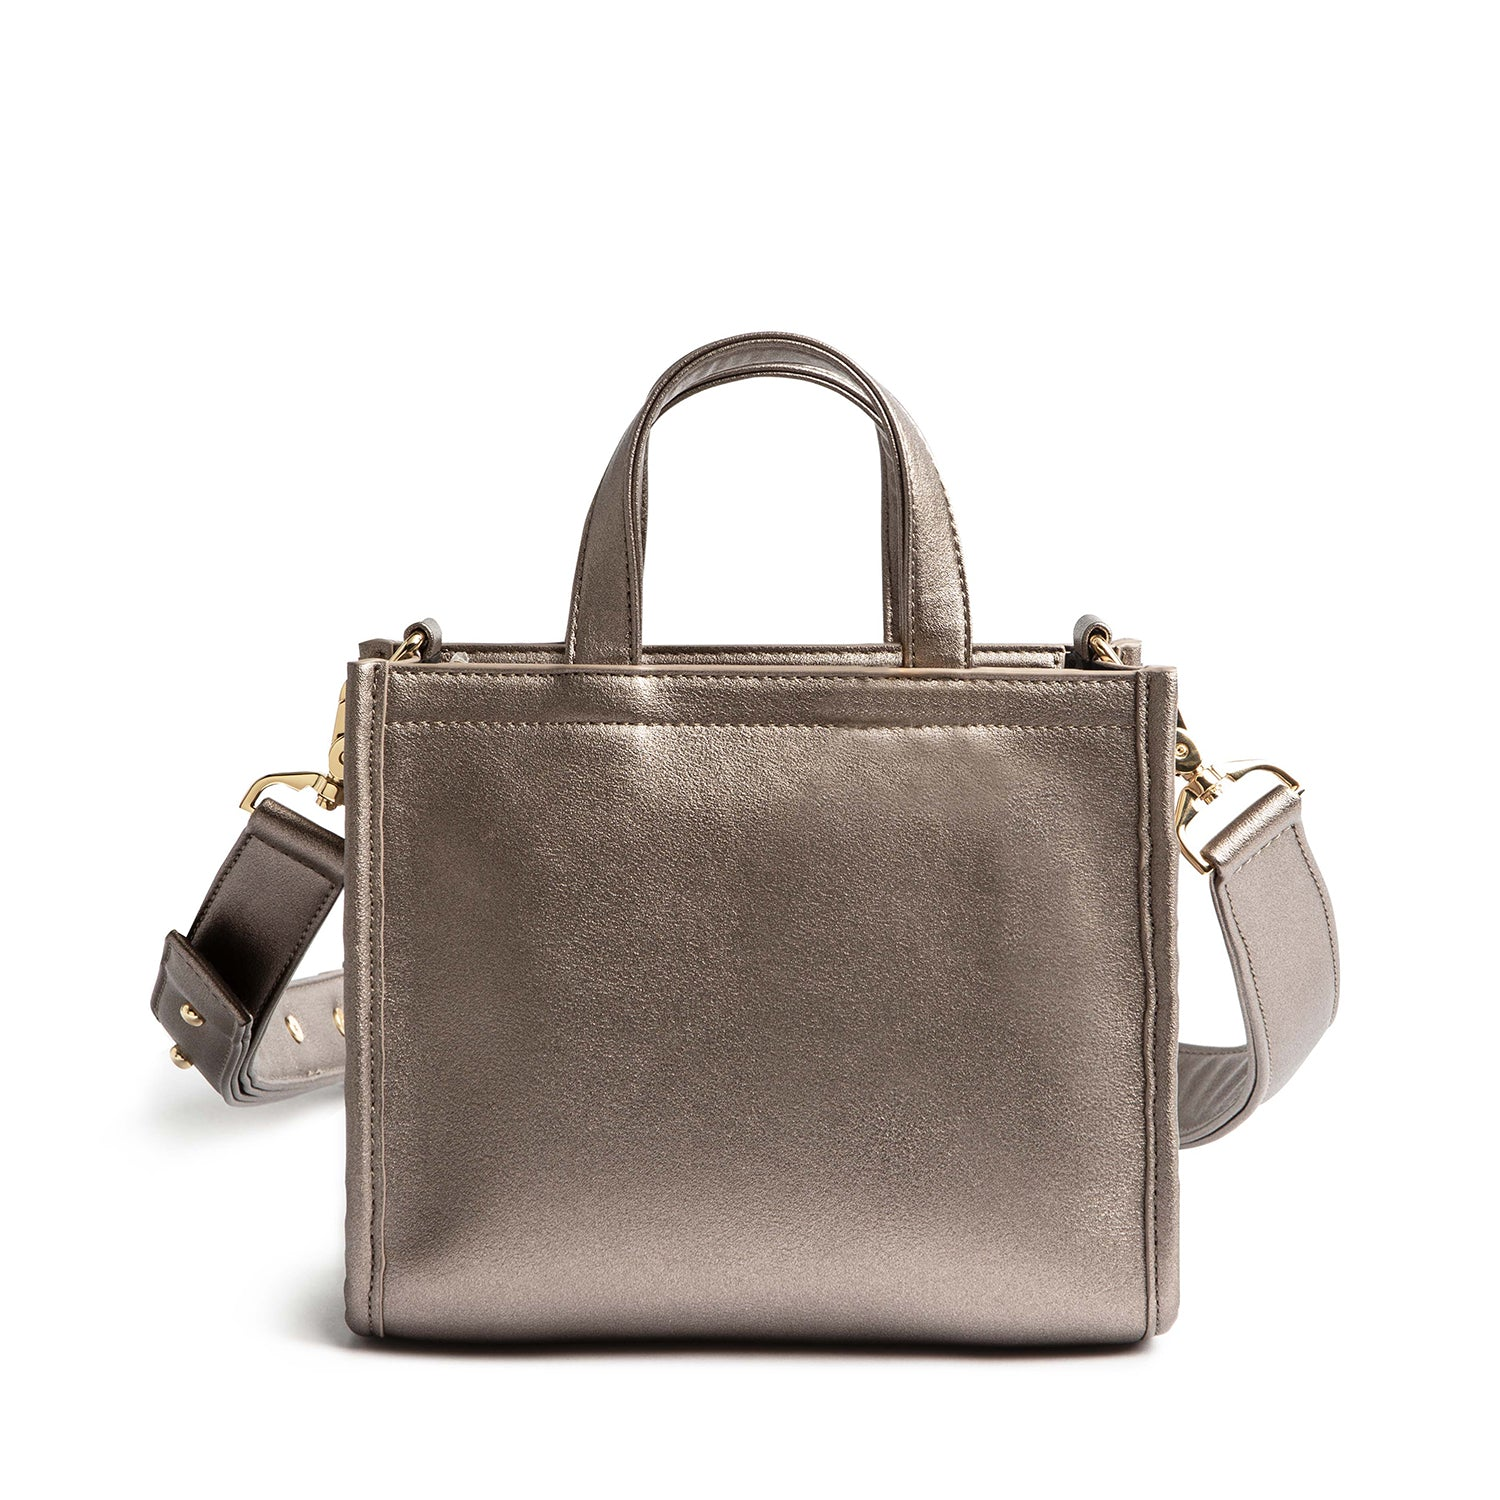 RR BAG - METALLIC GRAY